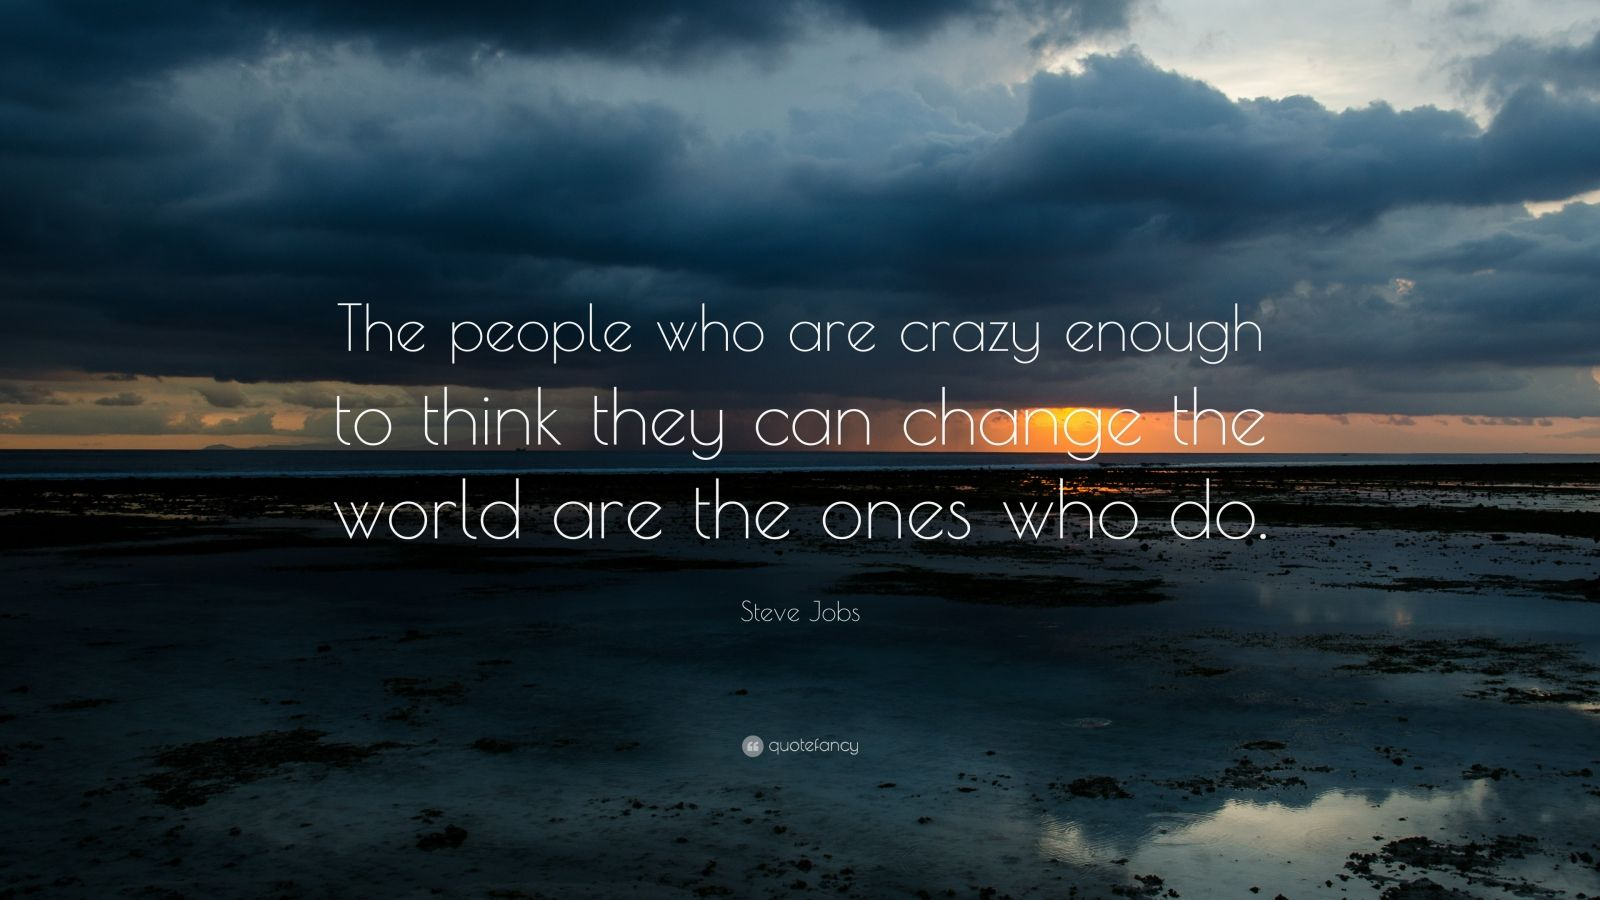 Charmant Steve Jobs Quote: U201cThe People Who Are Crazy Enough To Think They Can Change